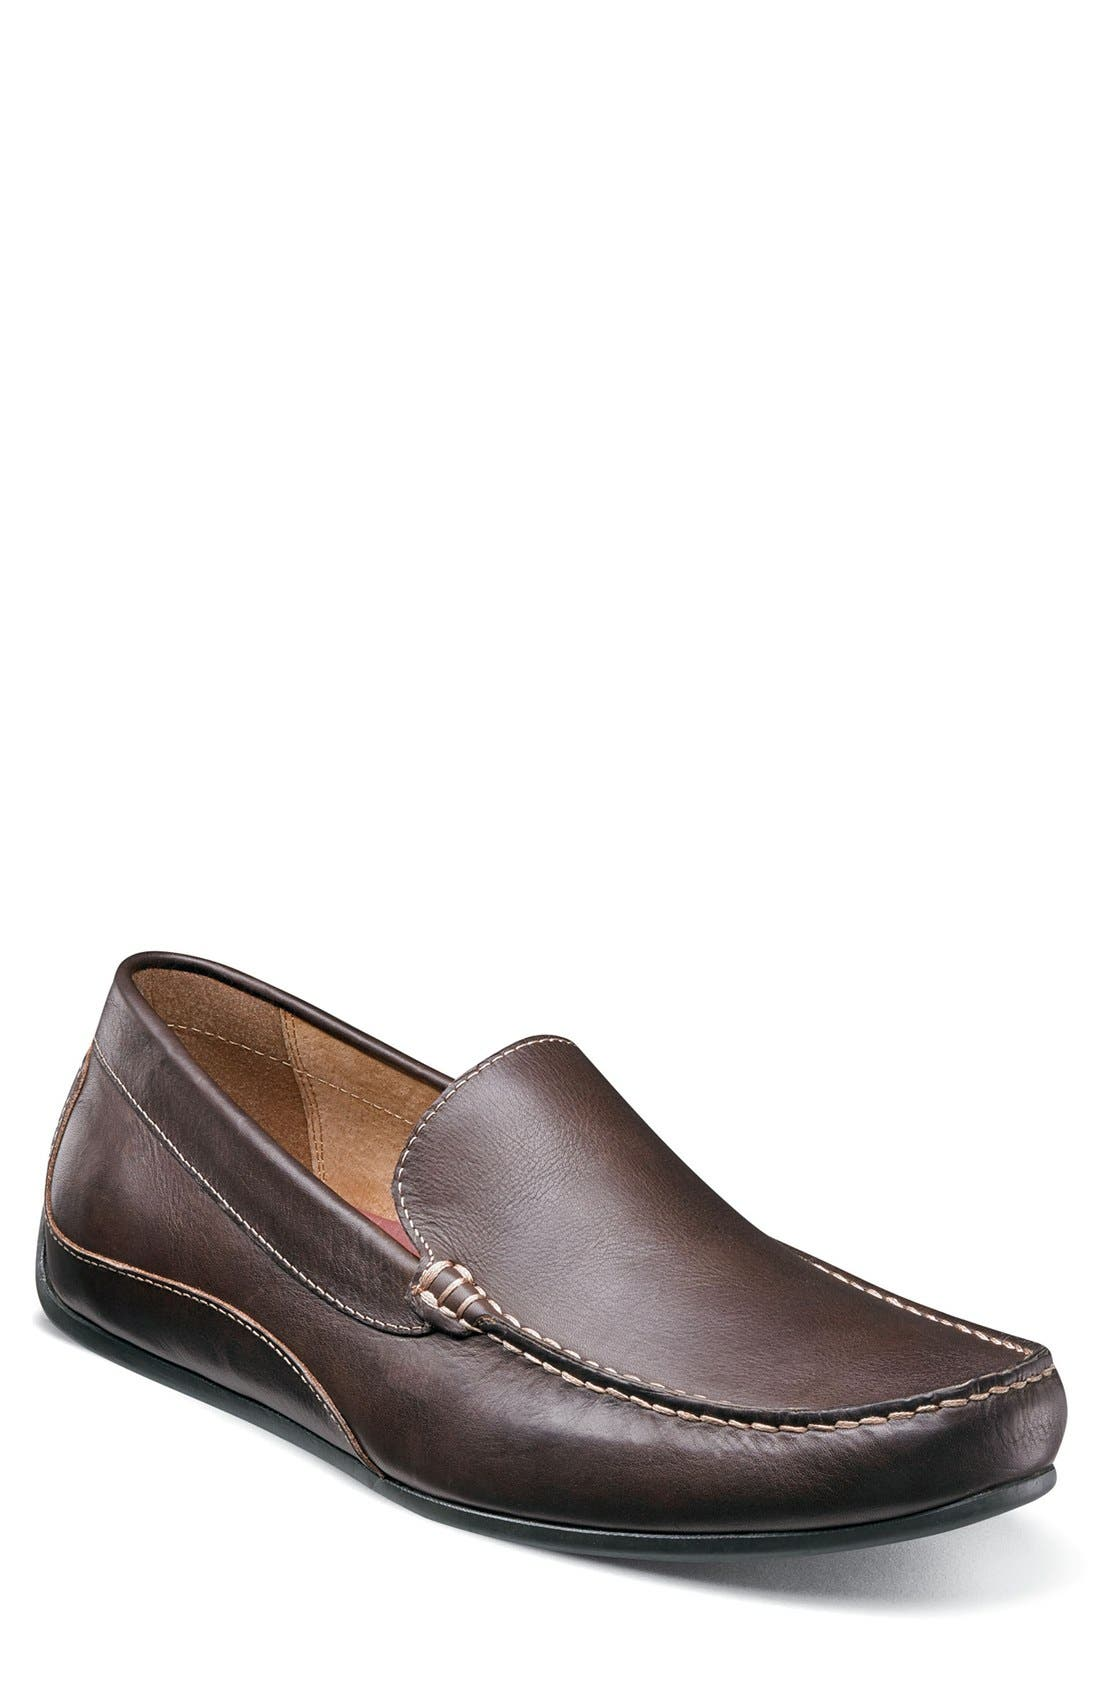 FLORSHEIM Oval Driving Shoe